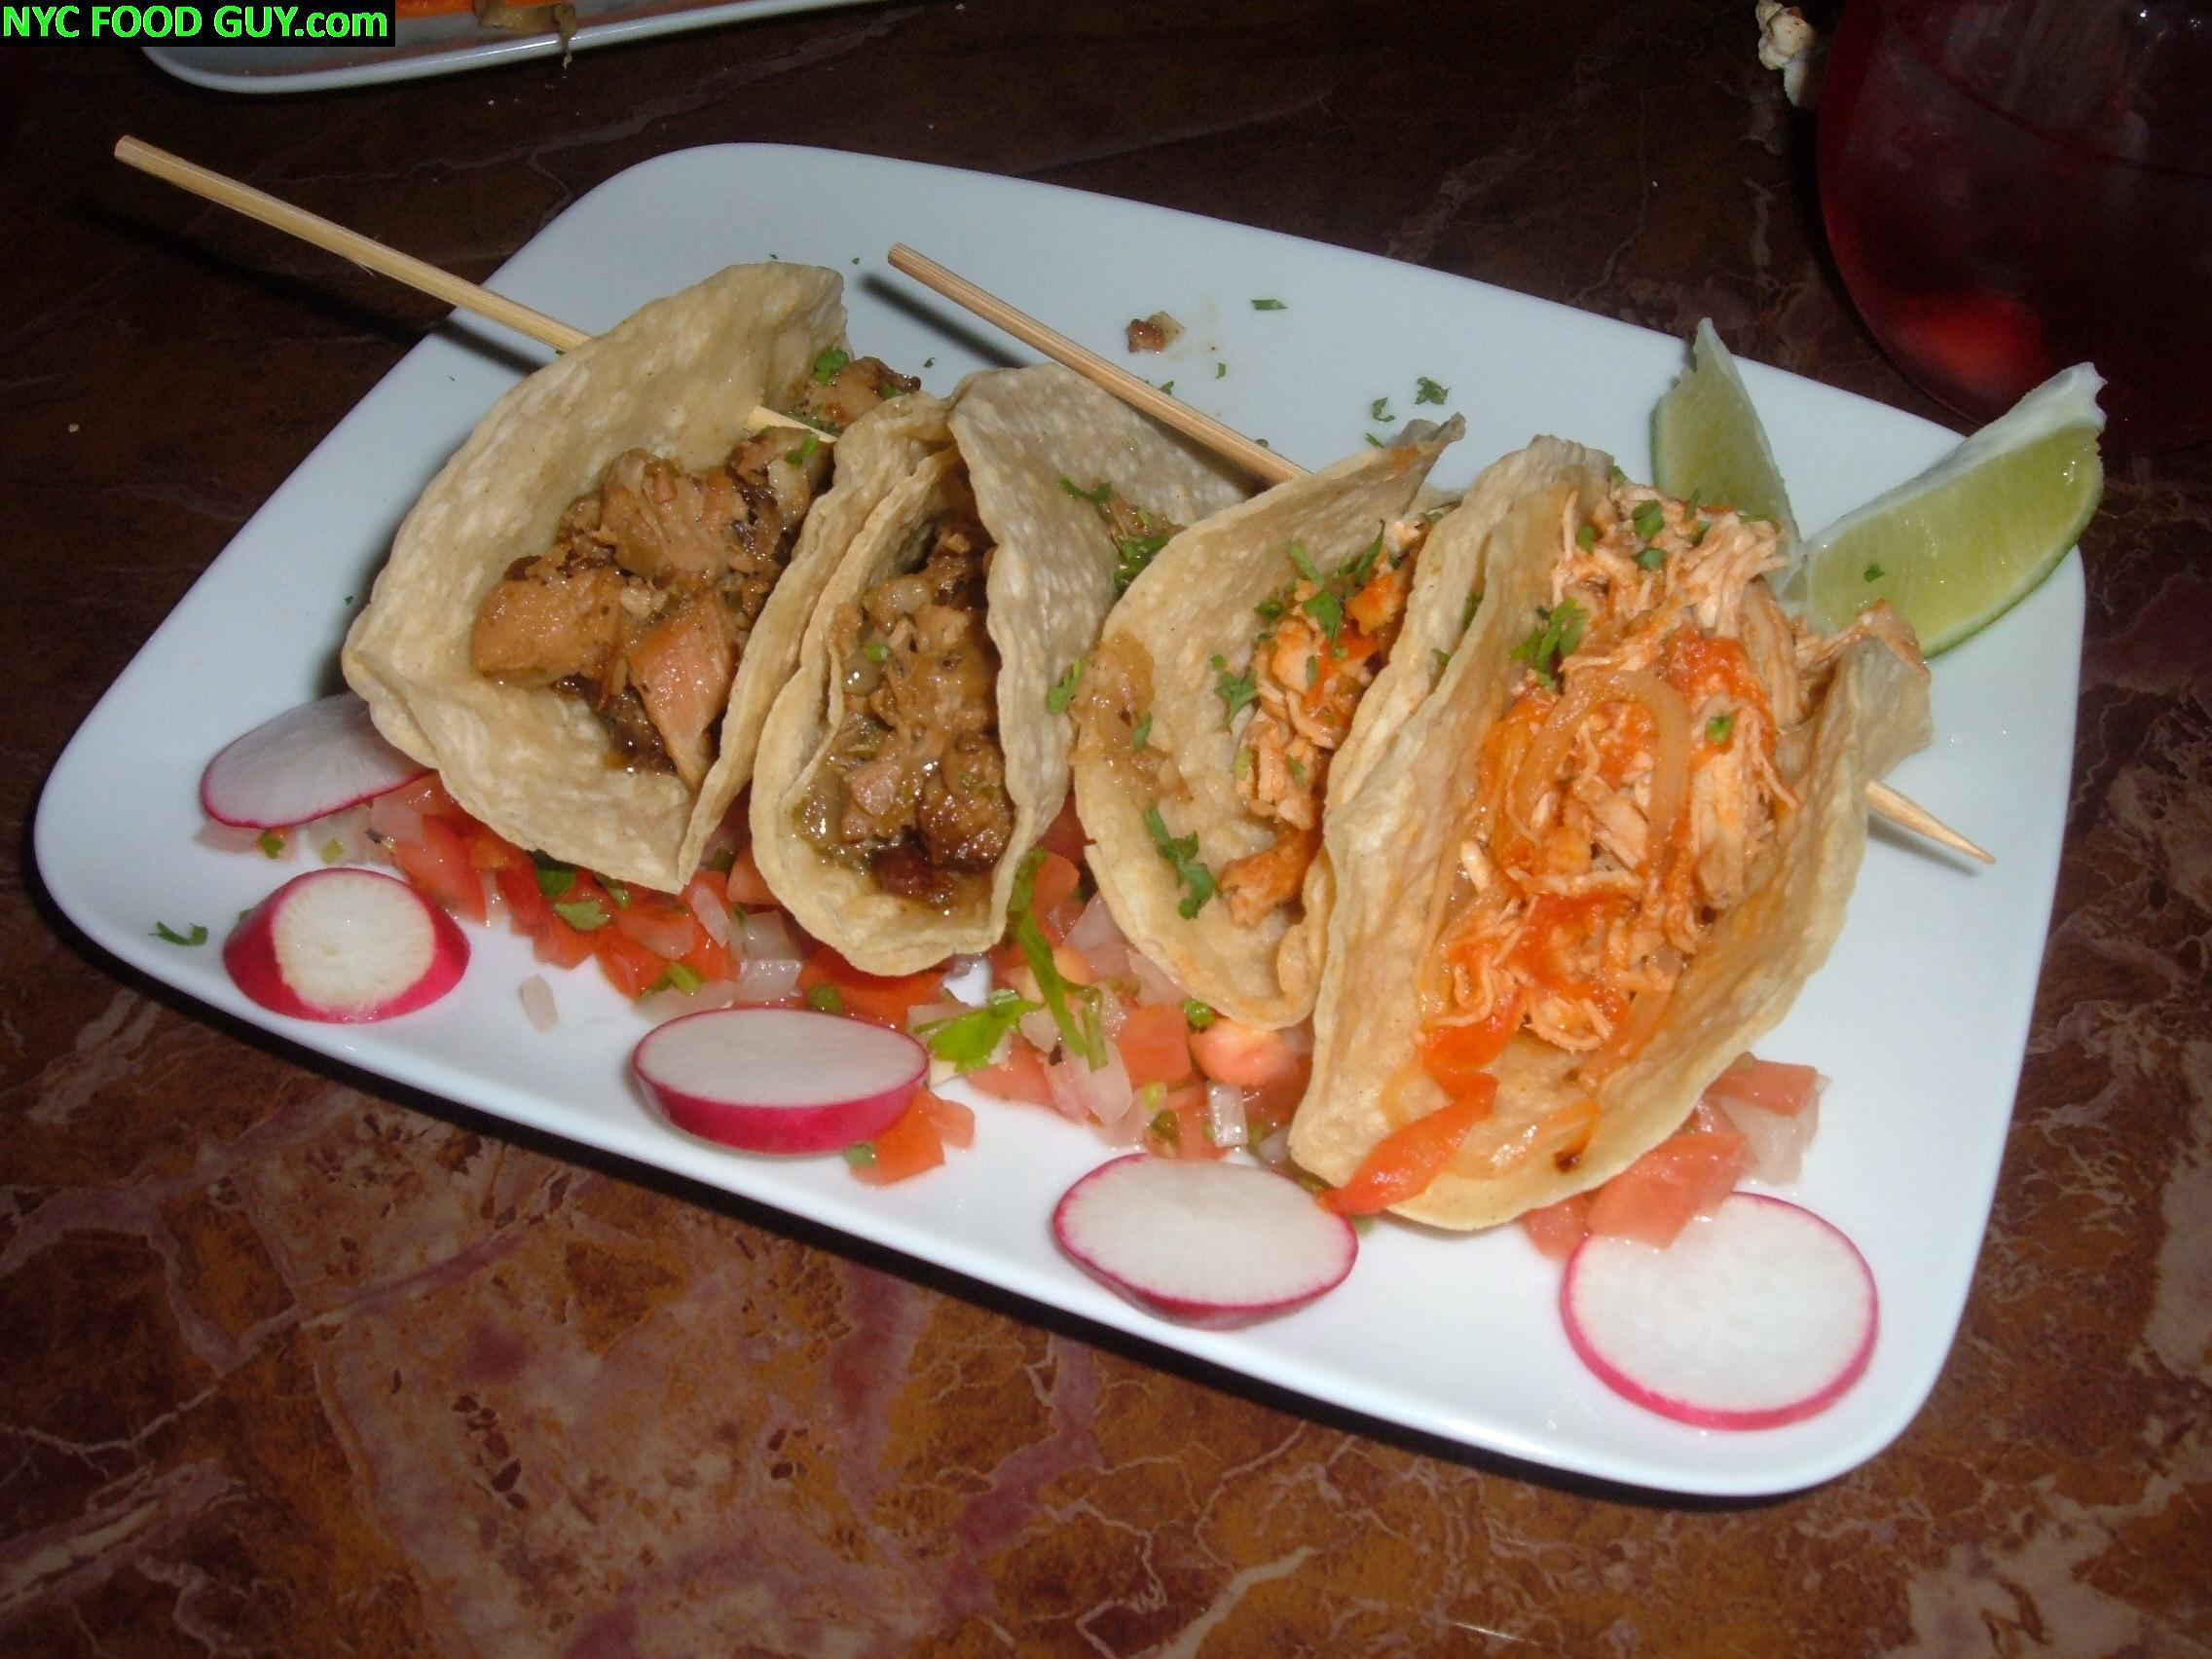 Pork (left) & Chicken (right) tacos